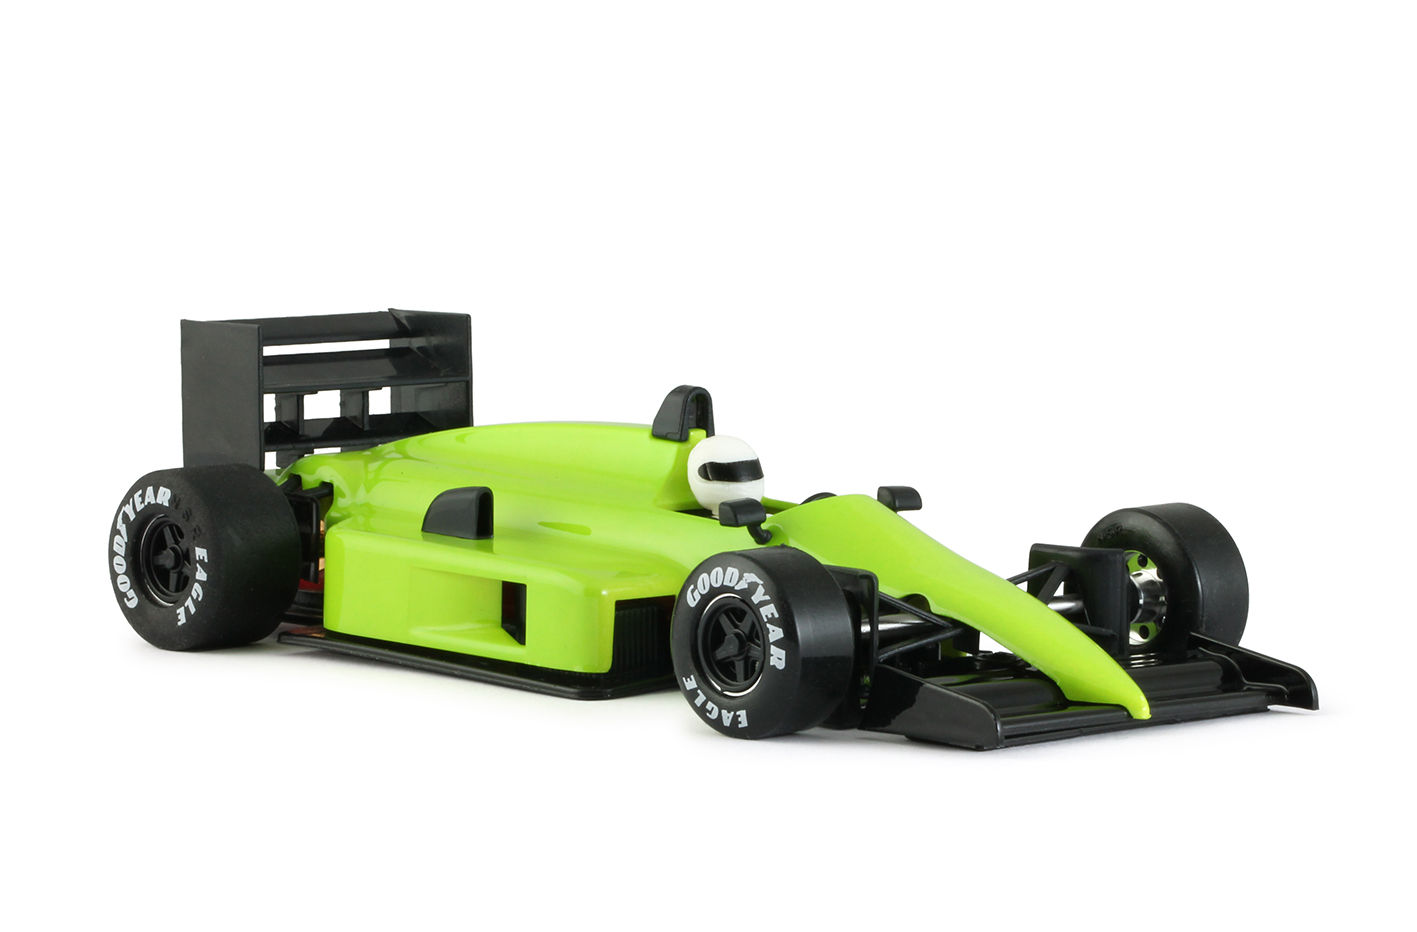 NSR0161IL NSR Formula 86/89 Green Test Car